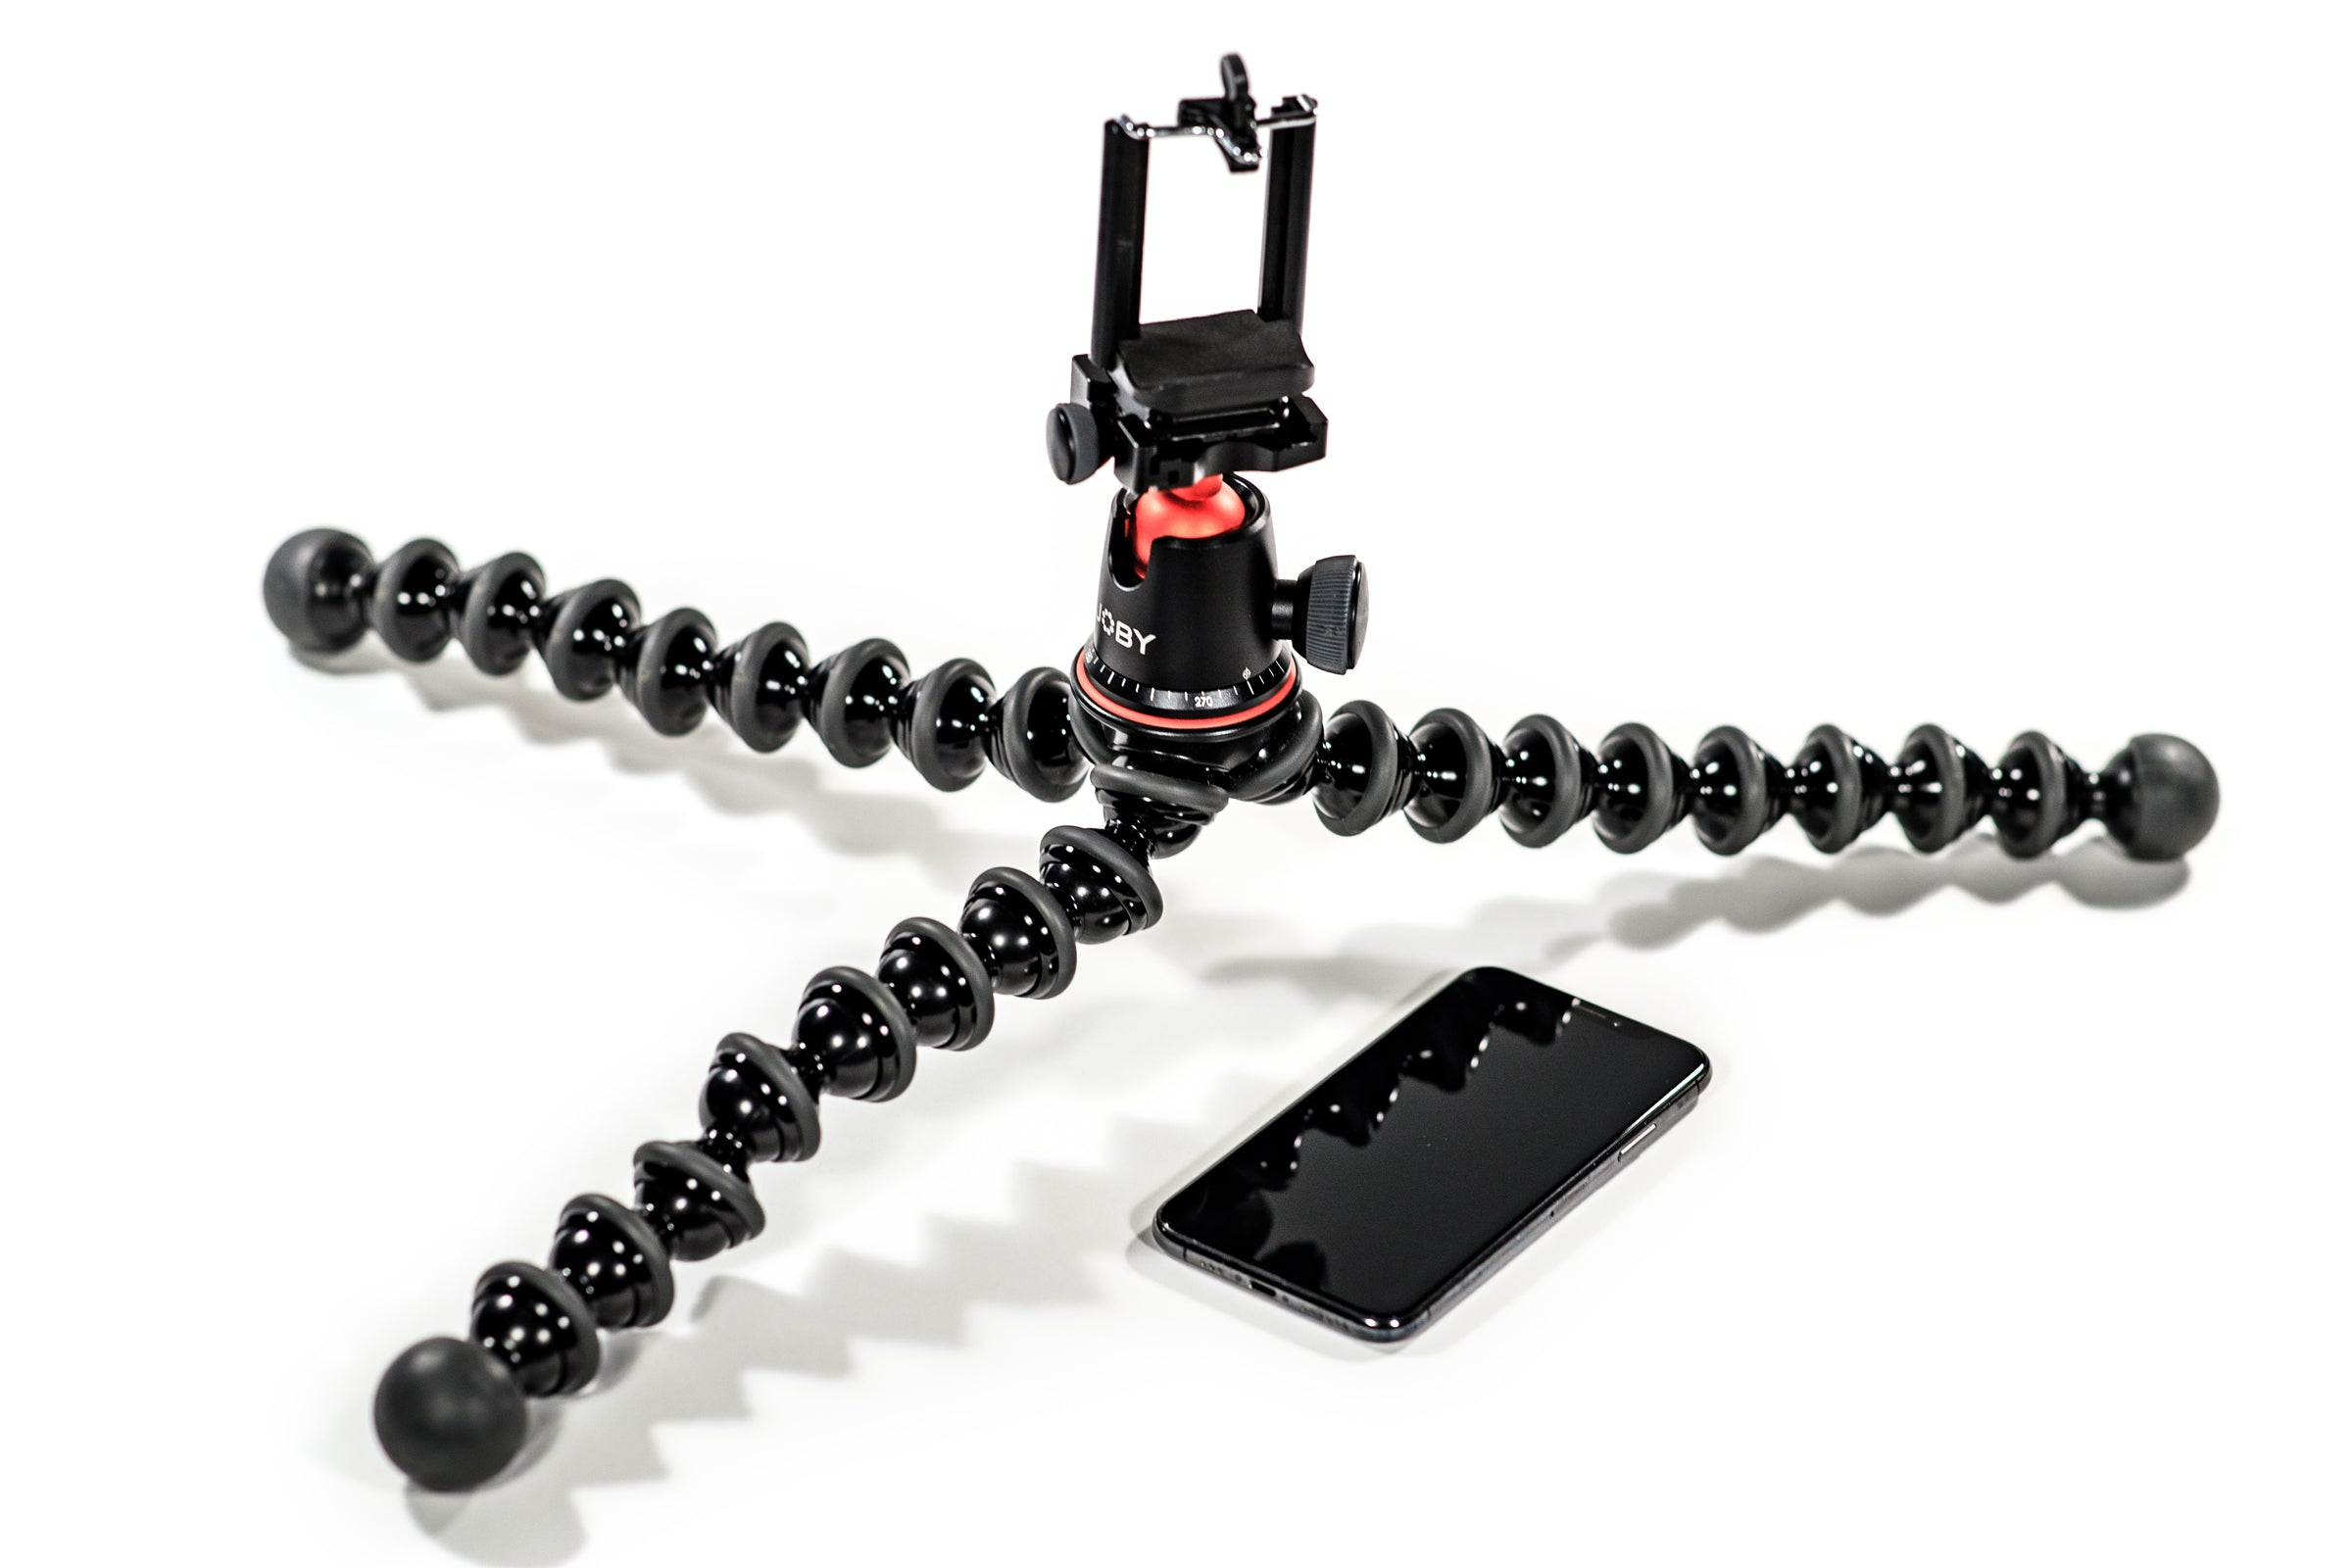 Tripod and Iphone for creating spinning product images